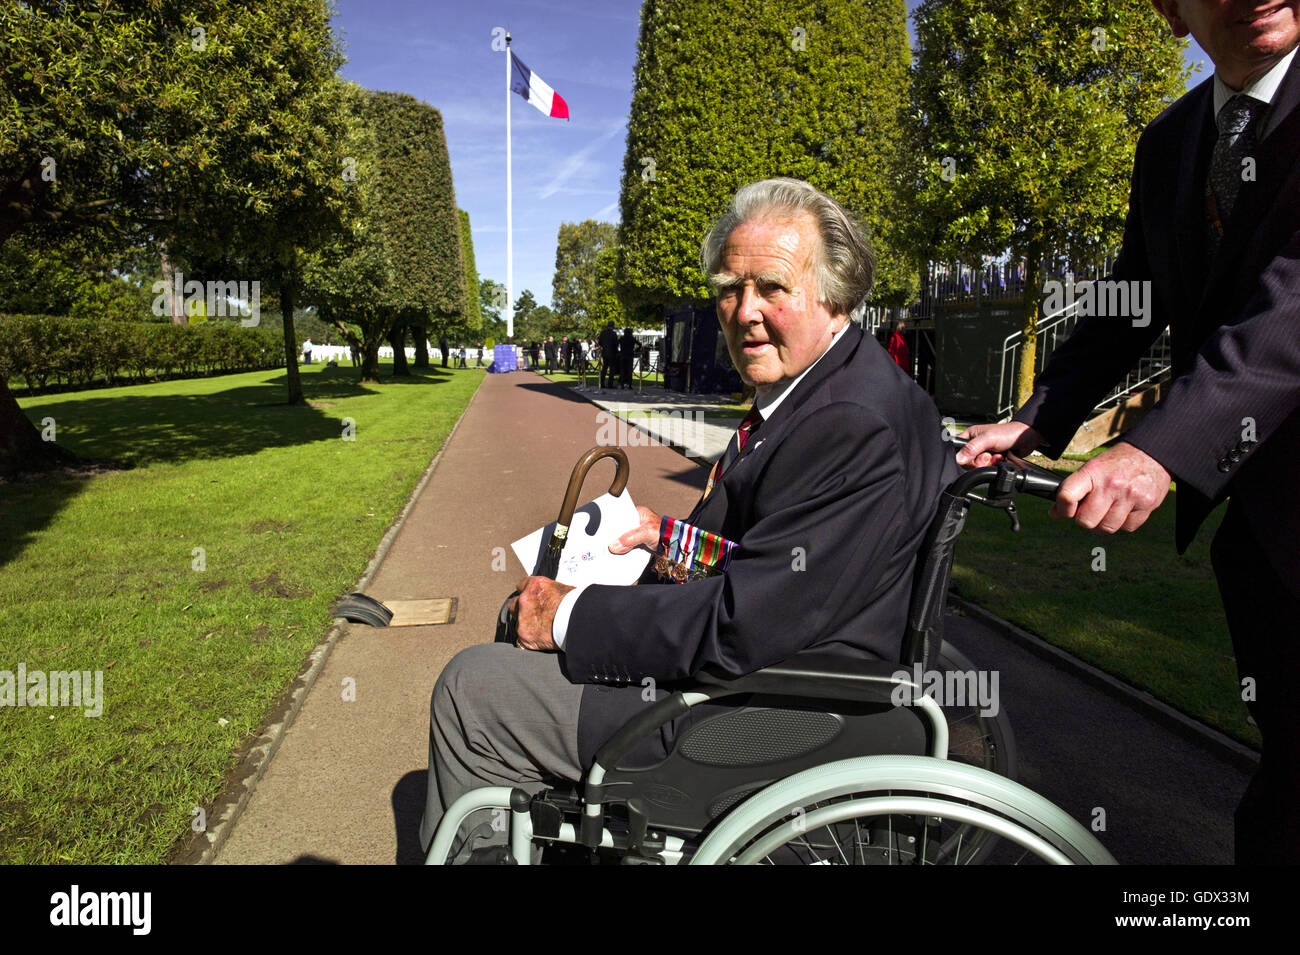 English veteran Geoffrey Litherland at the US military cemetery in Colleville-sur-Mer, France, 2014 - Stock Image